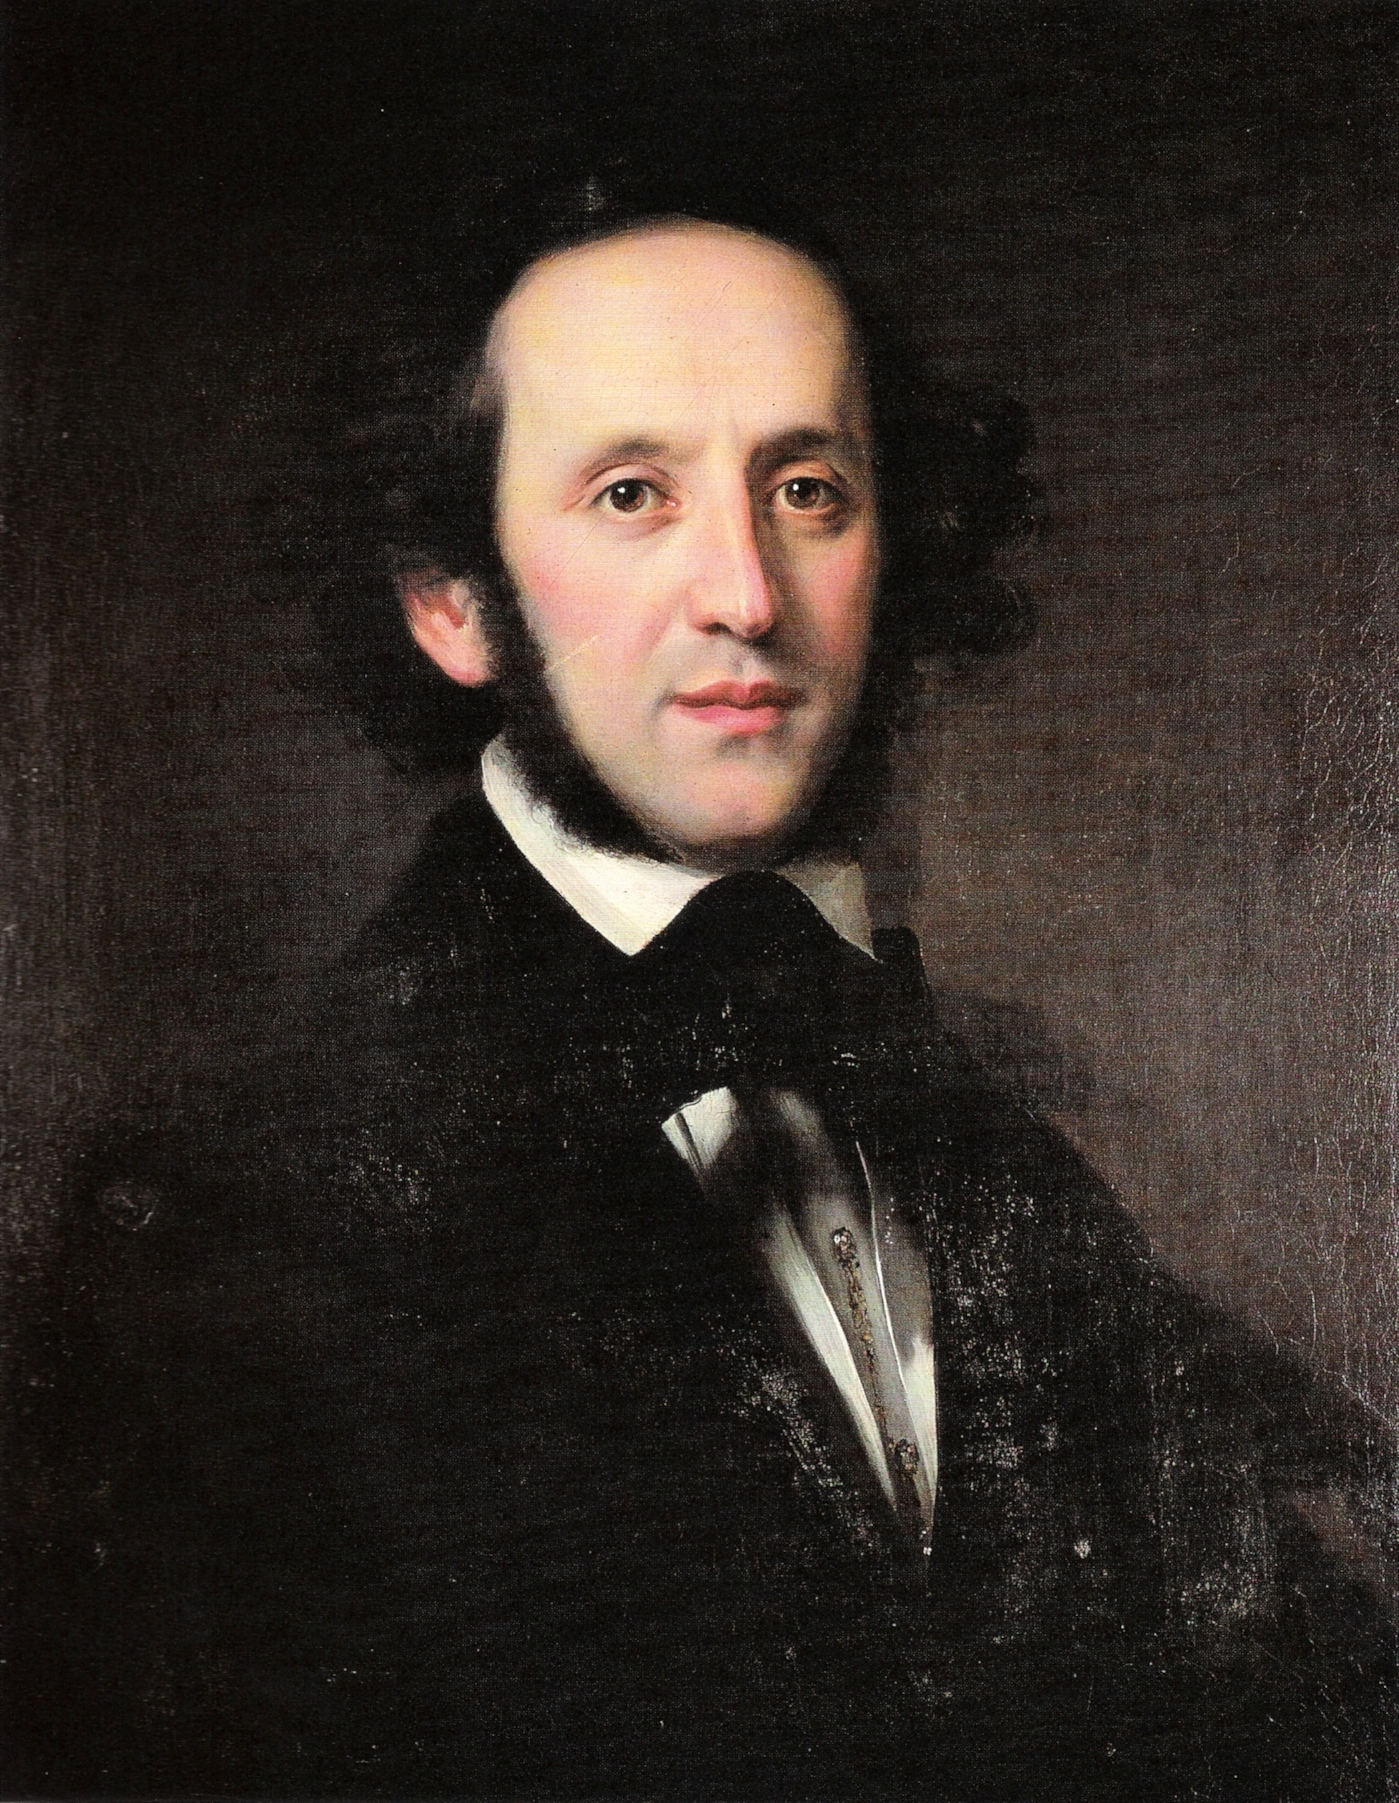 https://upload.wikimedia.org/wikipedia/commons/3/38/Felix_Mendelssohn_Bartholdy.jpg